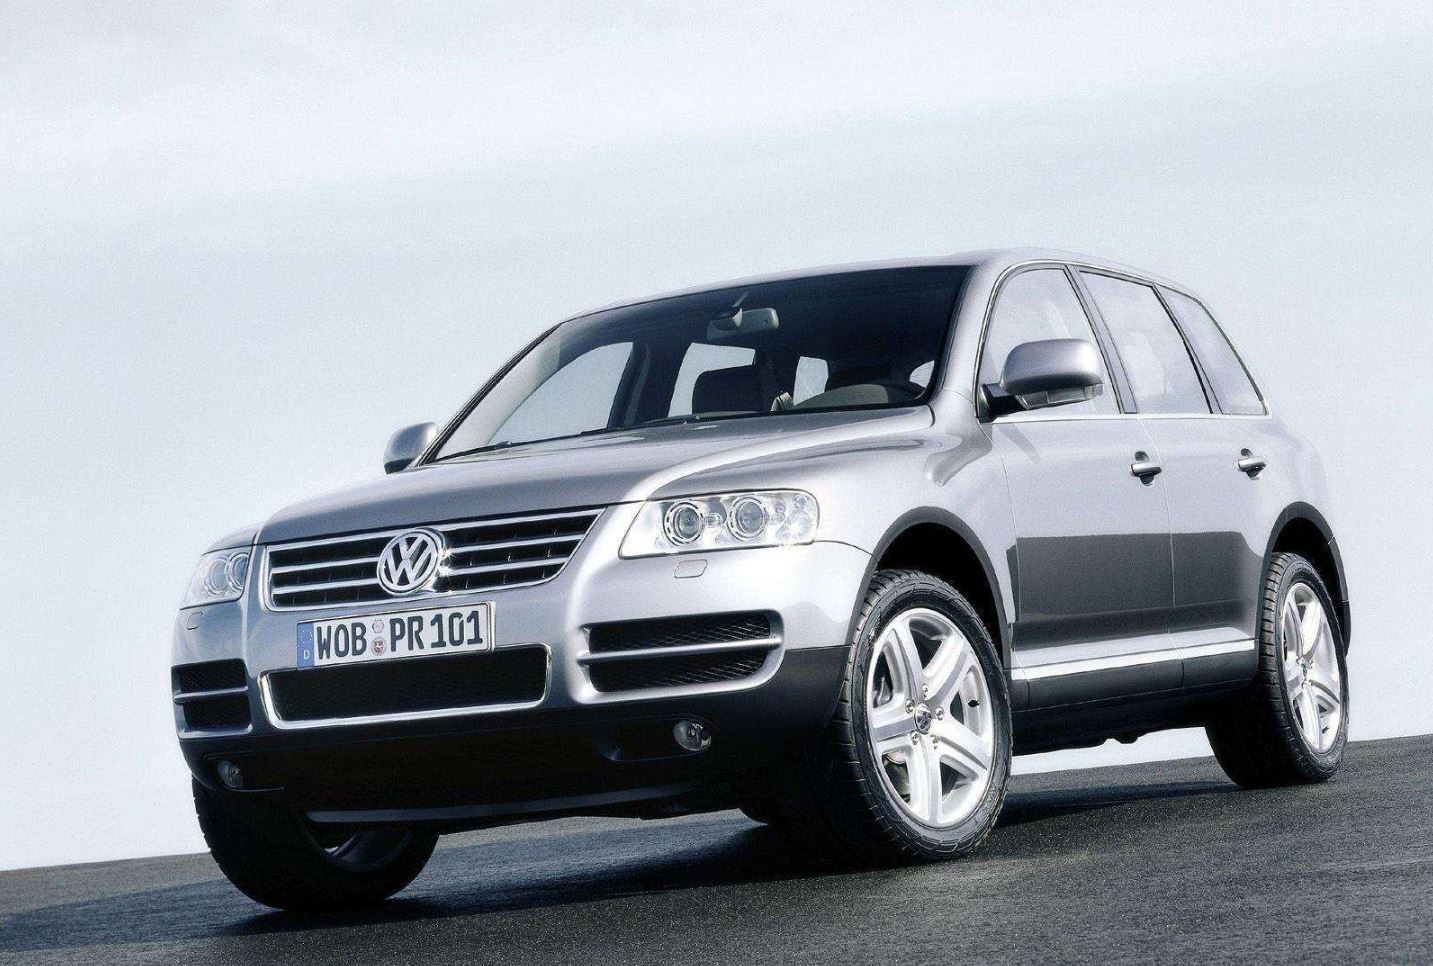 Vw Touareg First Generation Buyer S Guide History Garage Dreams